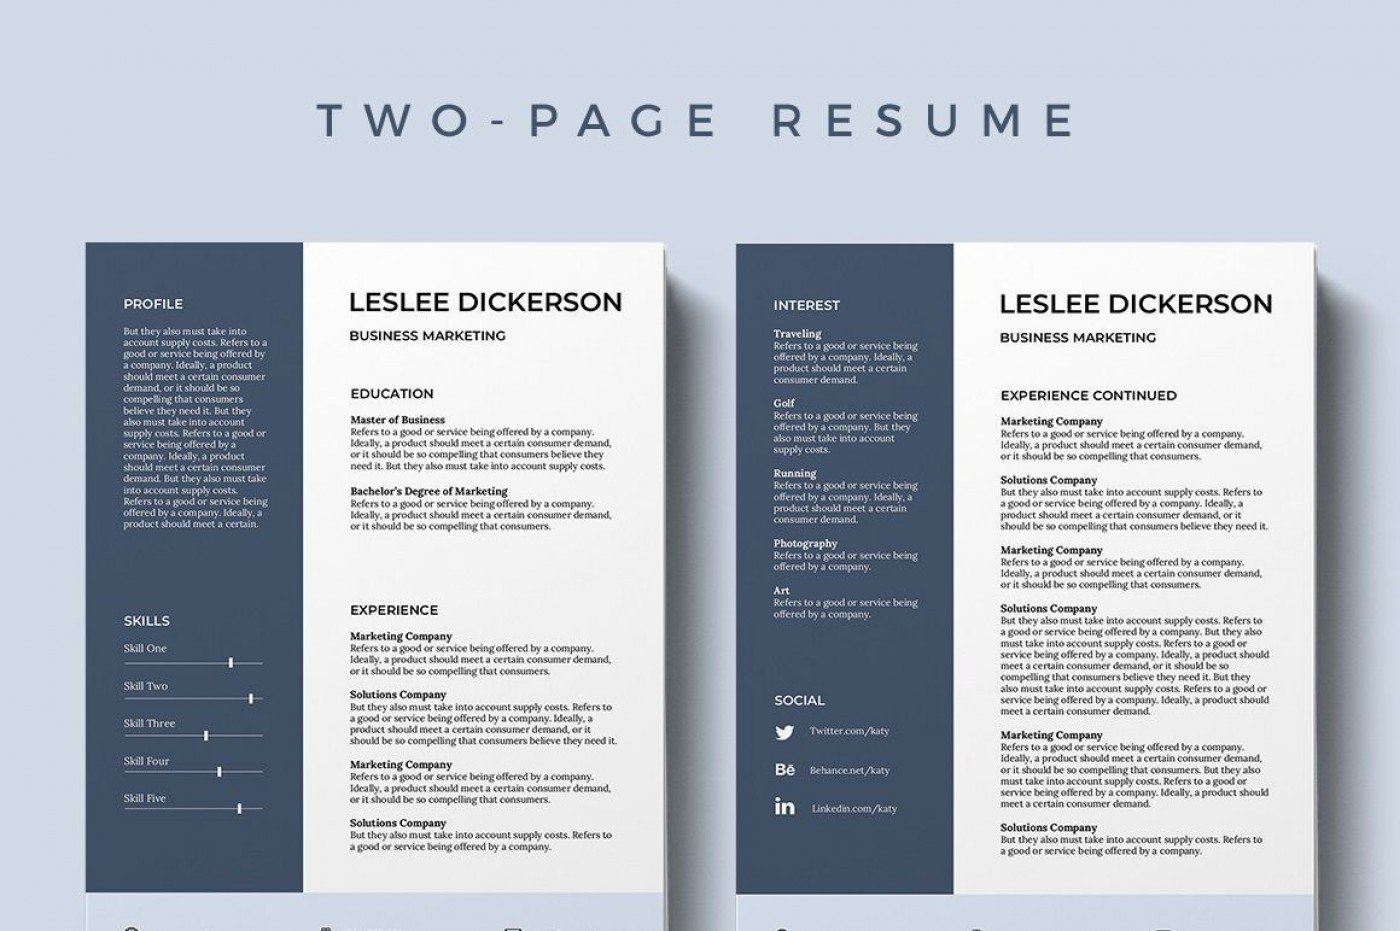 002 Awful Professional Resume Template 2018 Free Download Image 1400